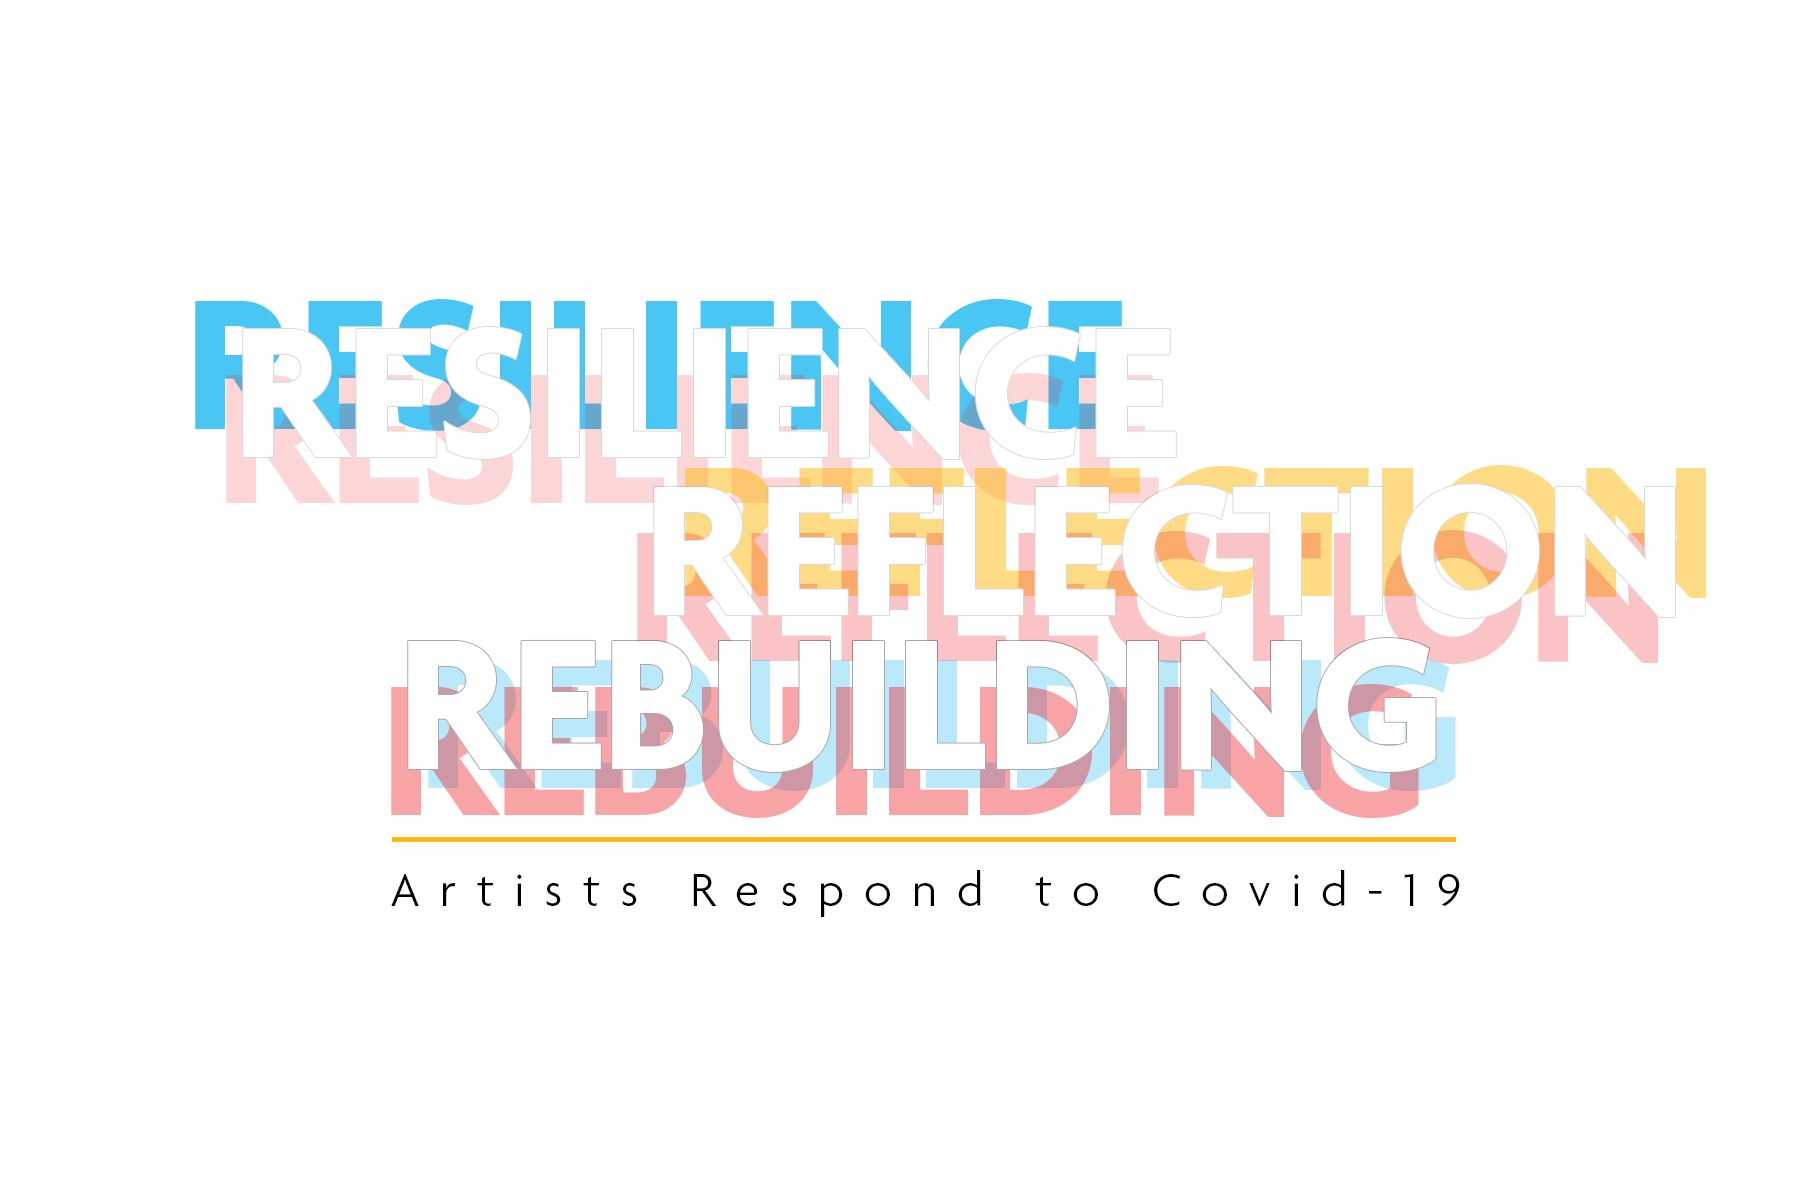 Resilience, Reflection, Rebuilding Artists Respond